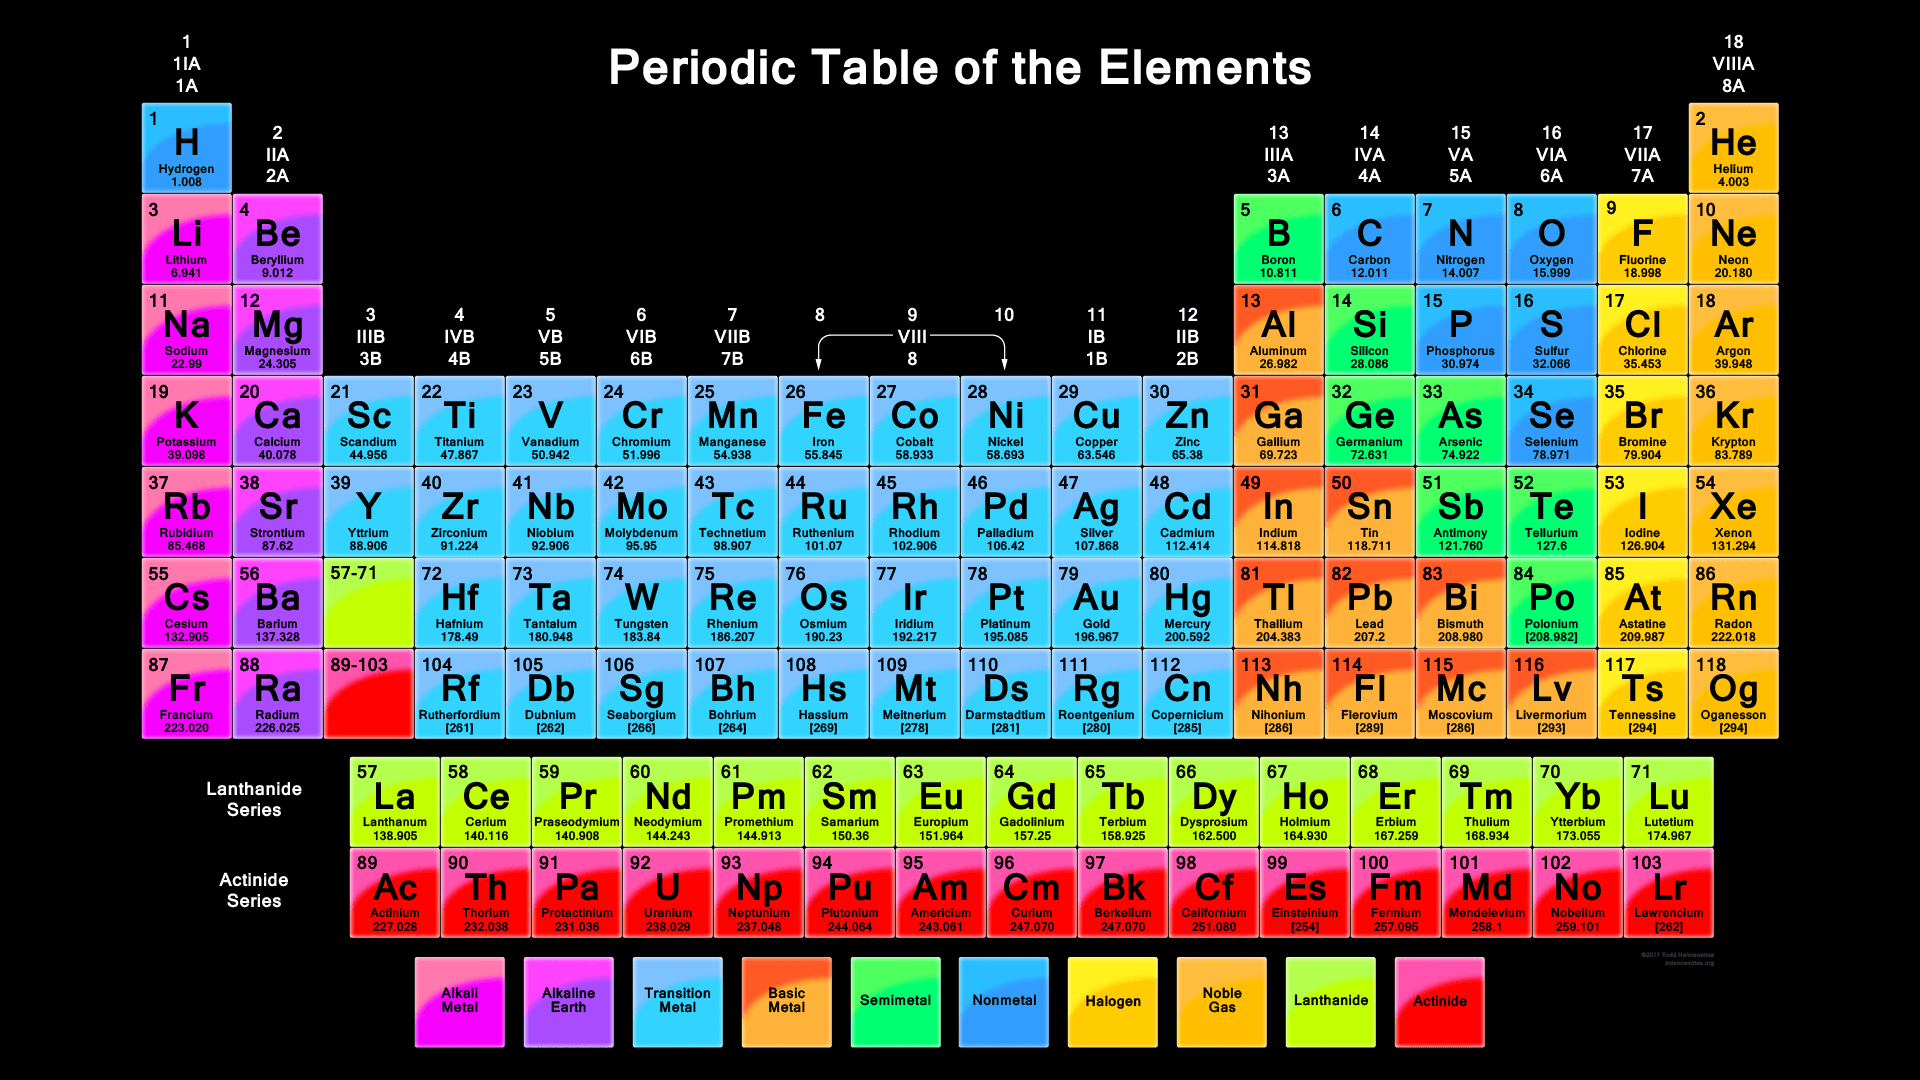 Periodic table pdf 2018 edition with 118 elements table on whitetable on black gamestrikefo Gallery